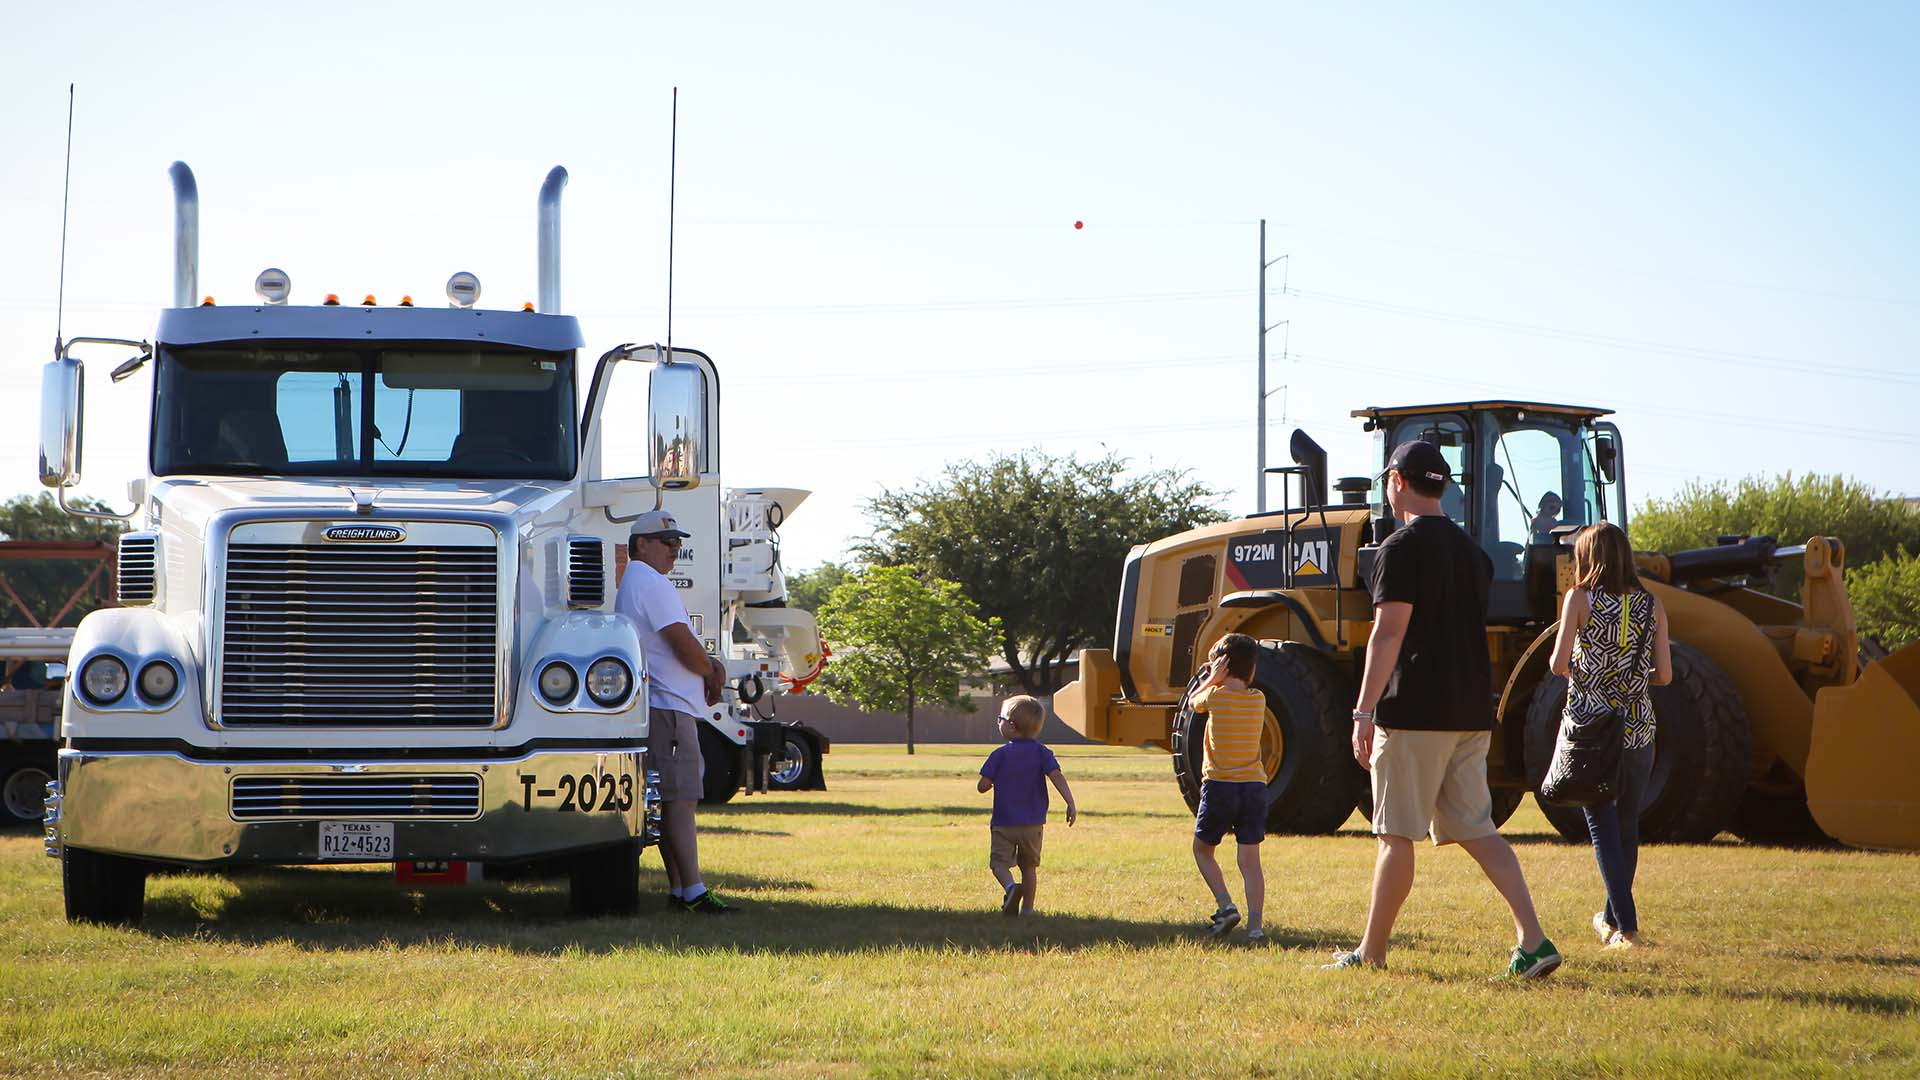 Touch-a-Truck 2020 | Austin Event and Activity for Kids This Spring